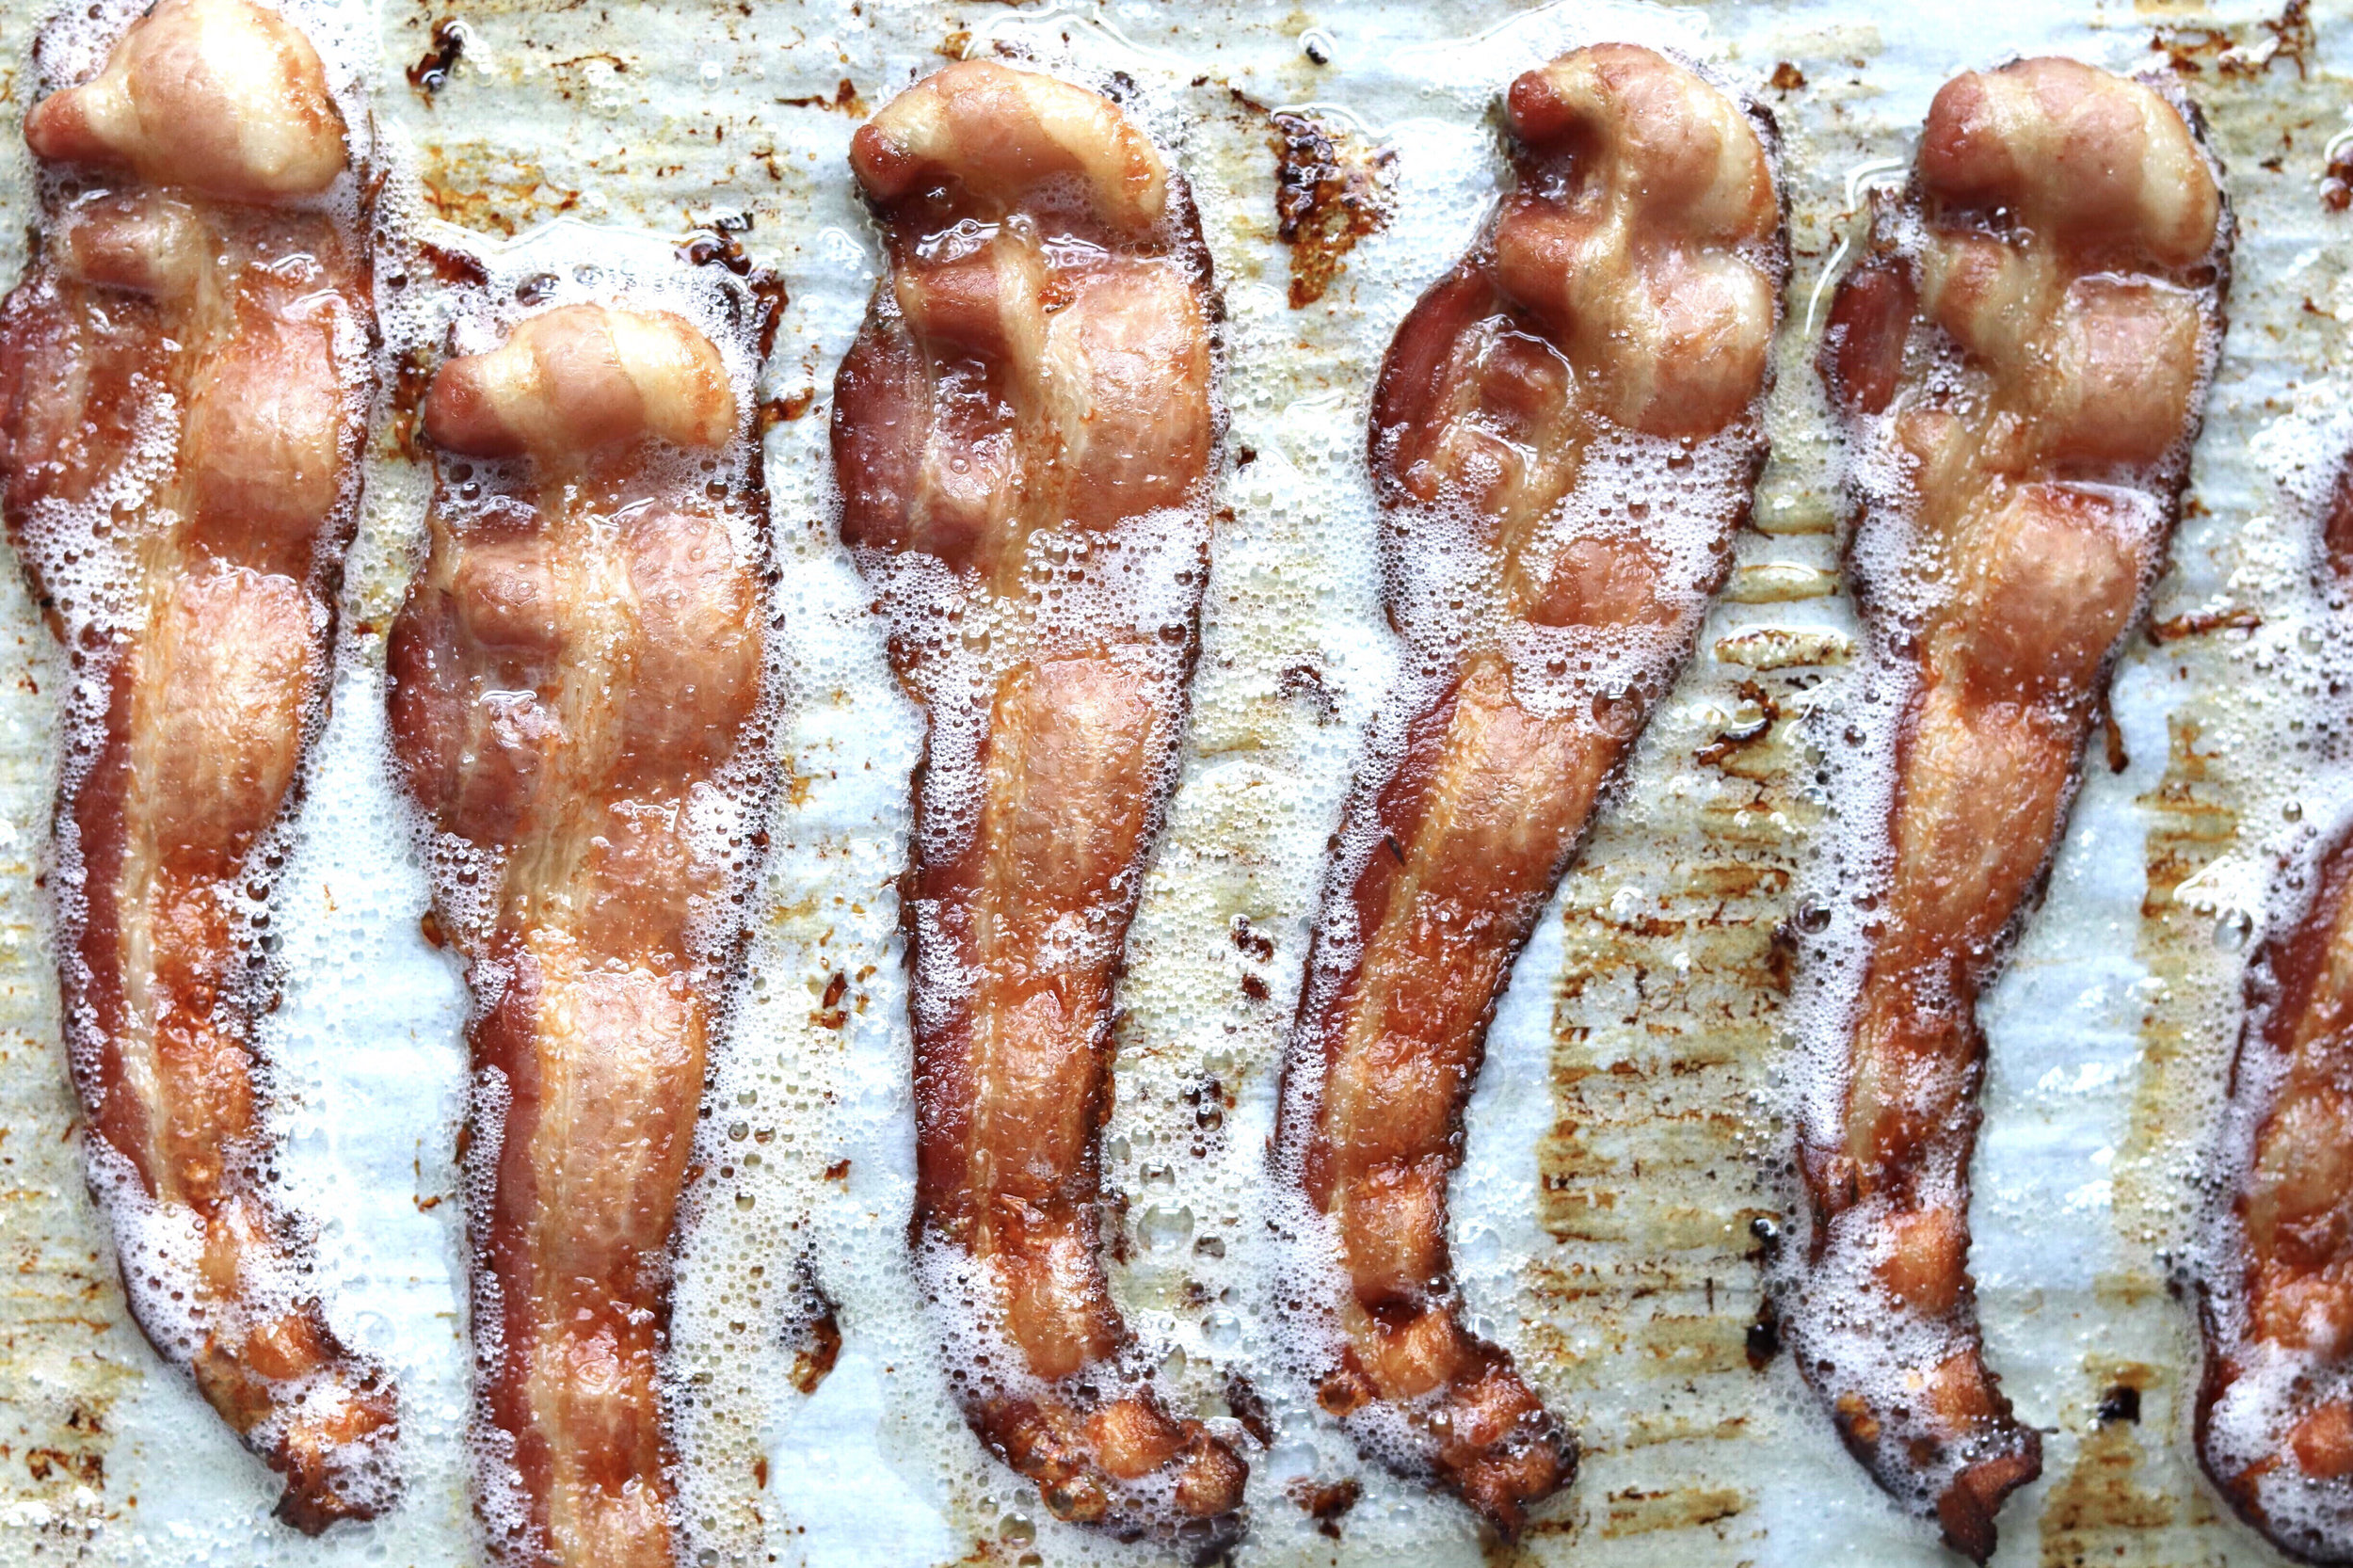 baked bacon.JPG